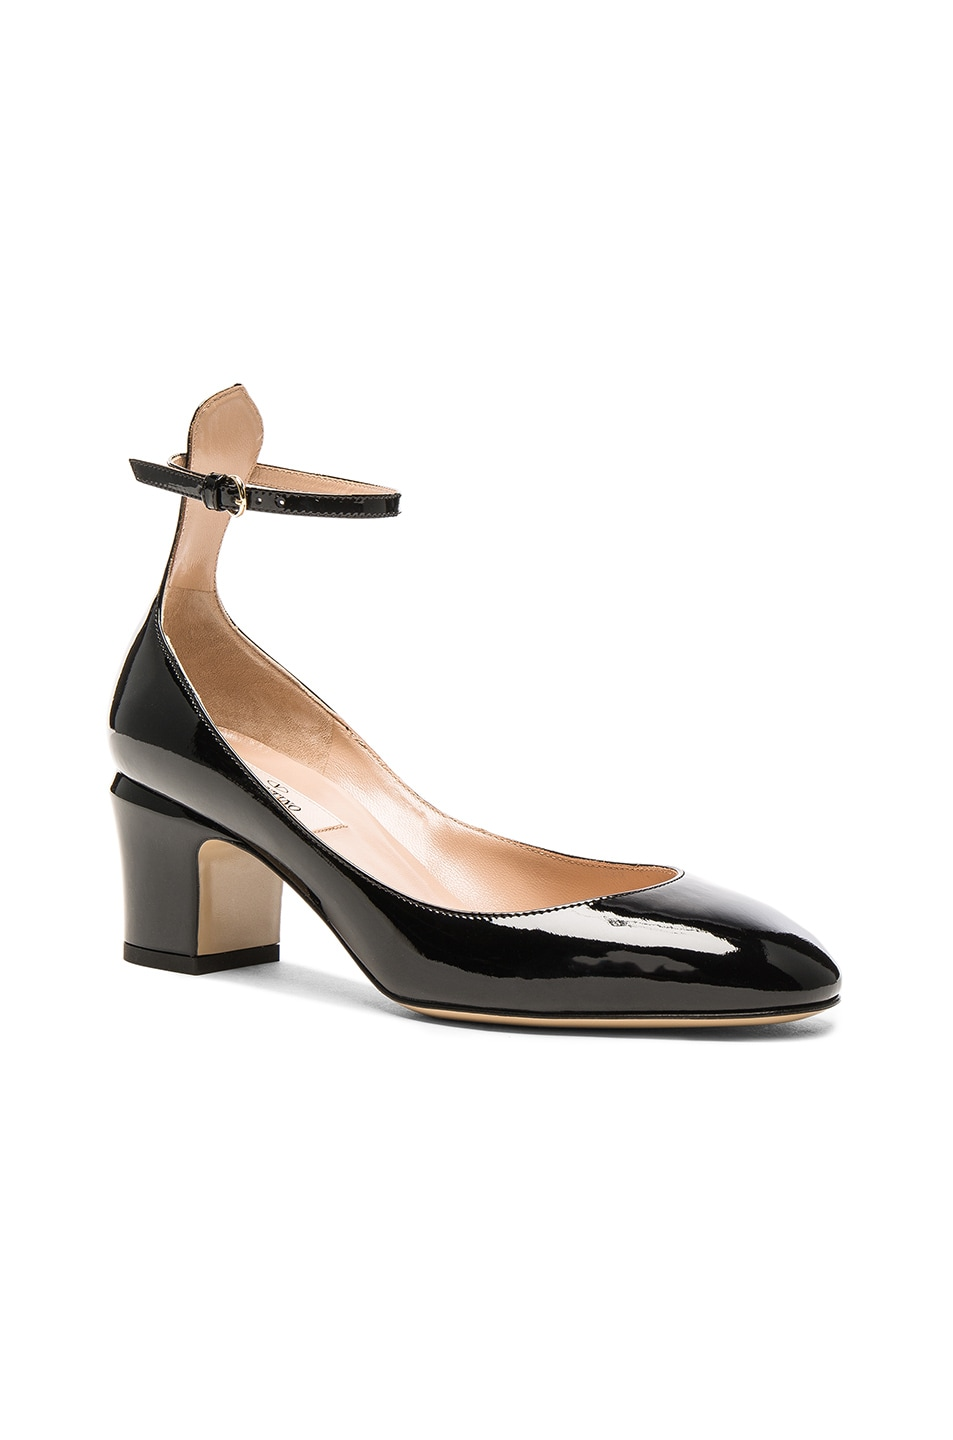 Image 2 of Valentino Patent Leather Tan-Go Pumps in Black